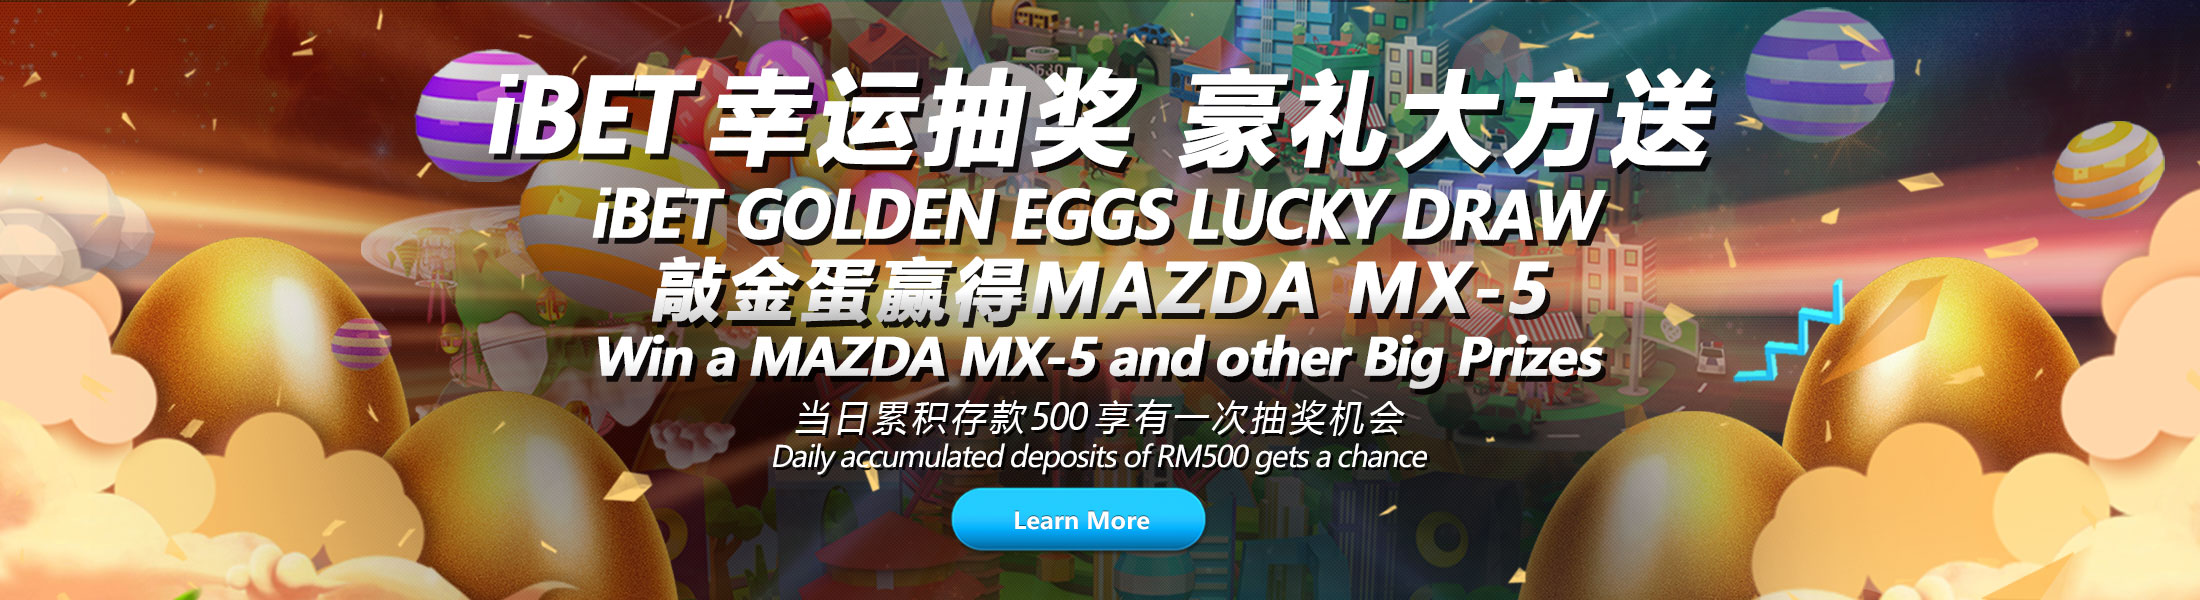 iBET Lucky Draw Crack The Golden Eggs and Win MAZDA MX-5-2200x600